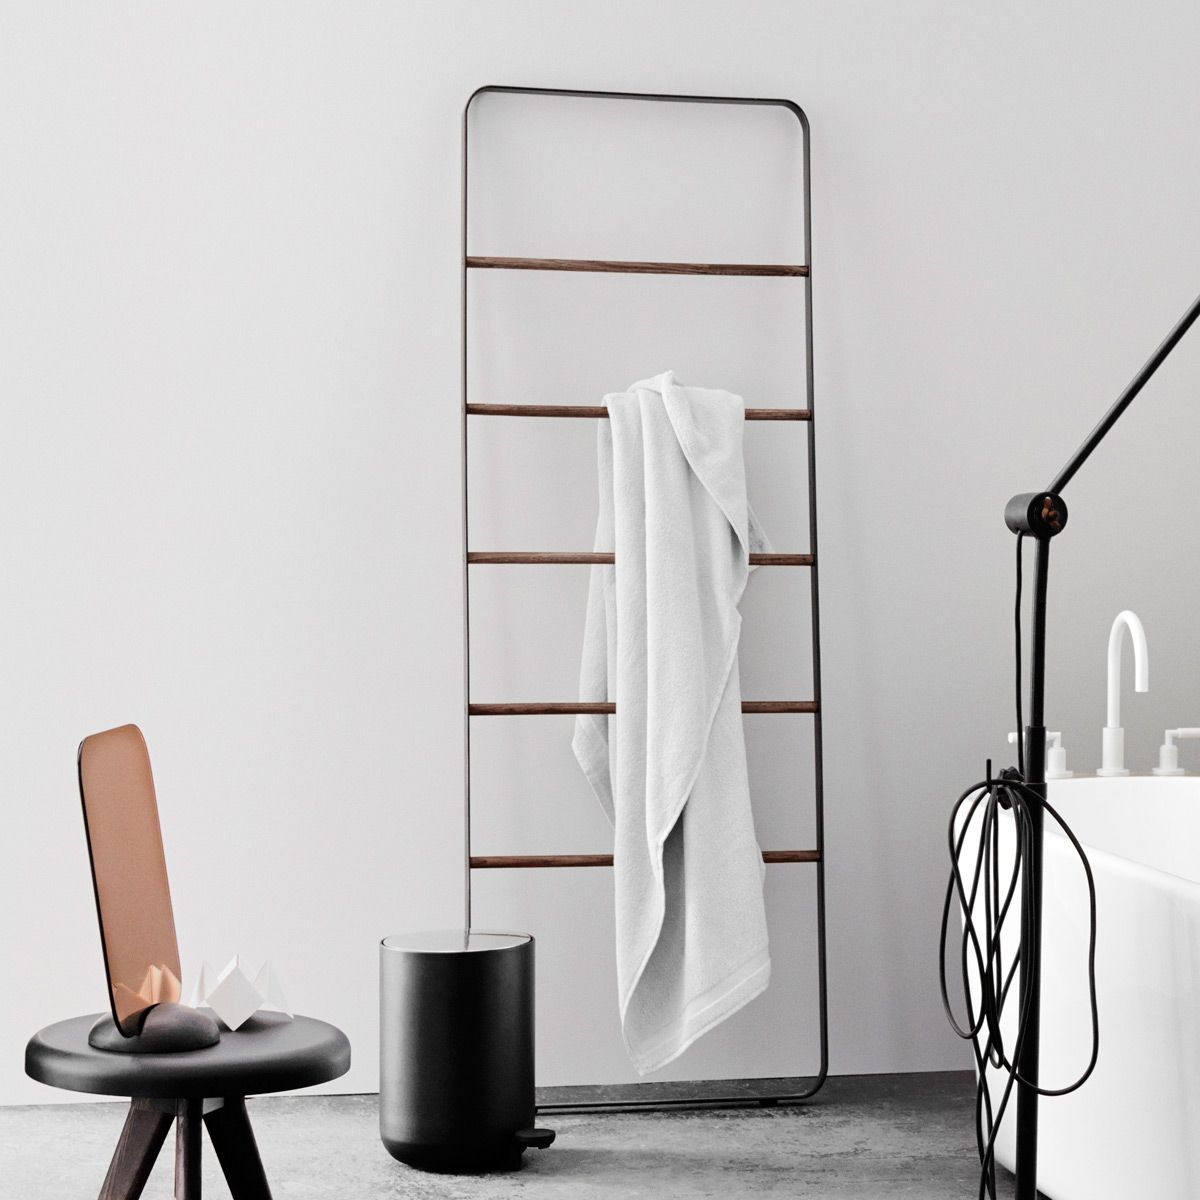 Modern Towel Ladder Stands For Bathroom Modern Towels Towel Rack Towel Ladder